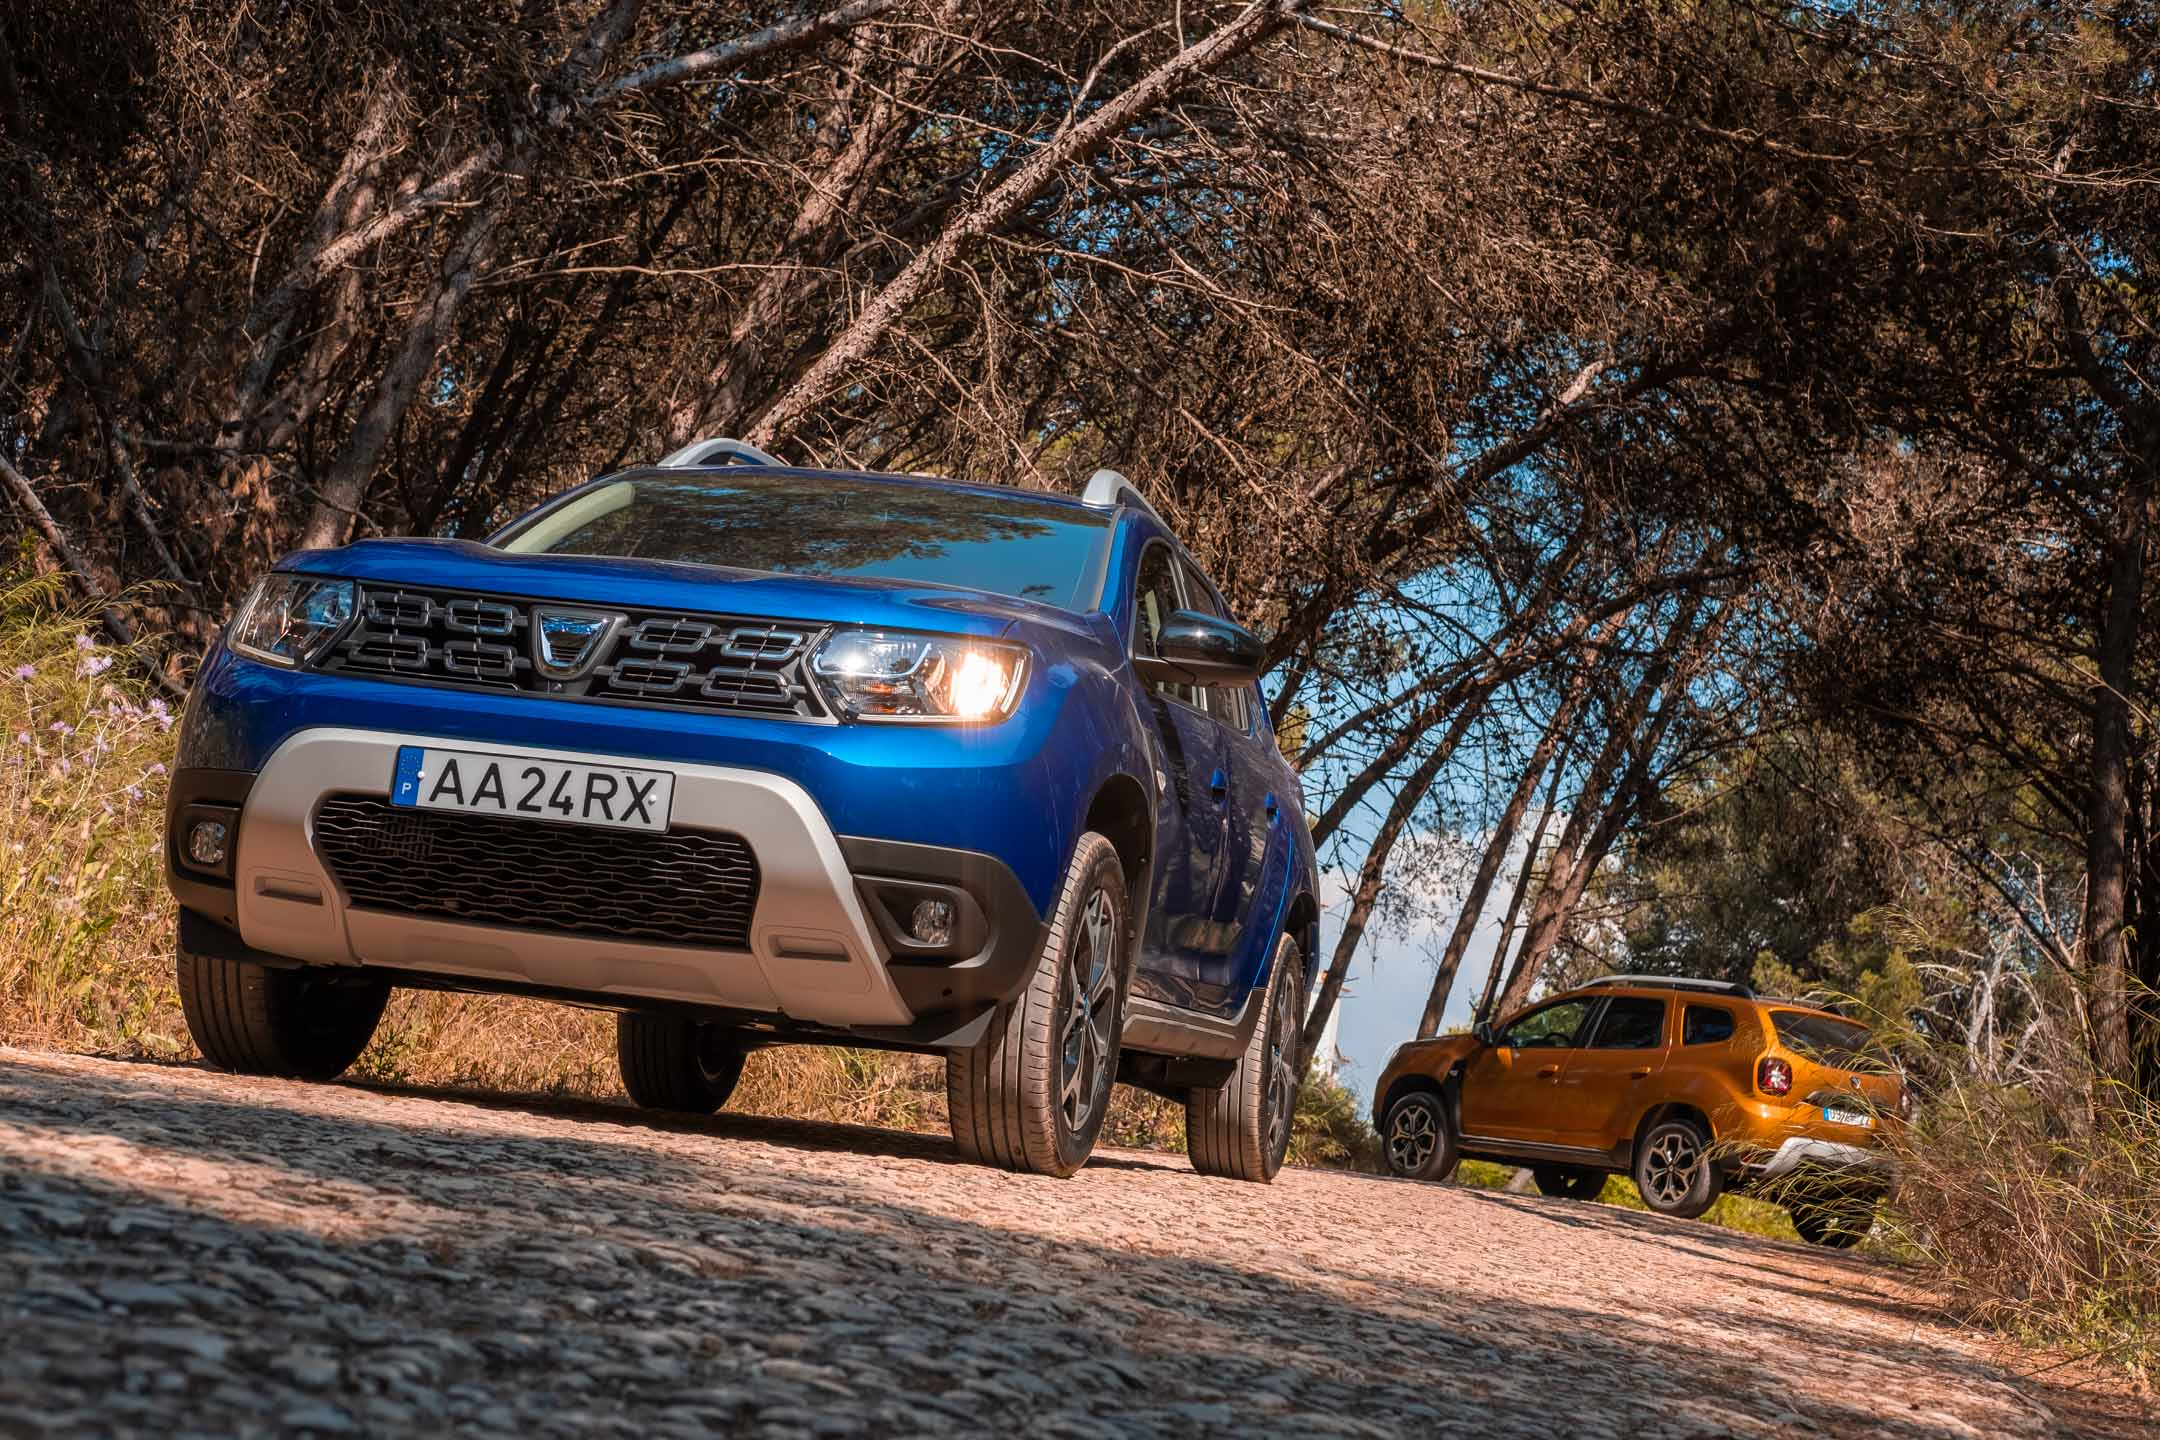 Dacia Duster a GPL vs gasolina